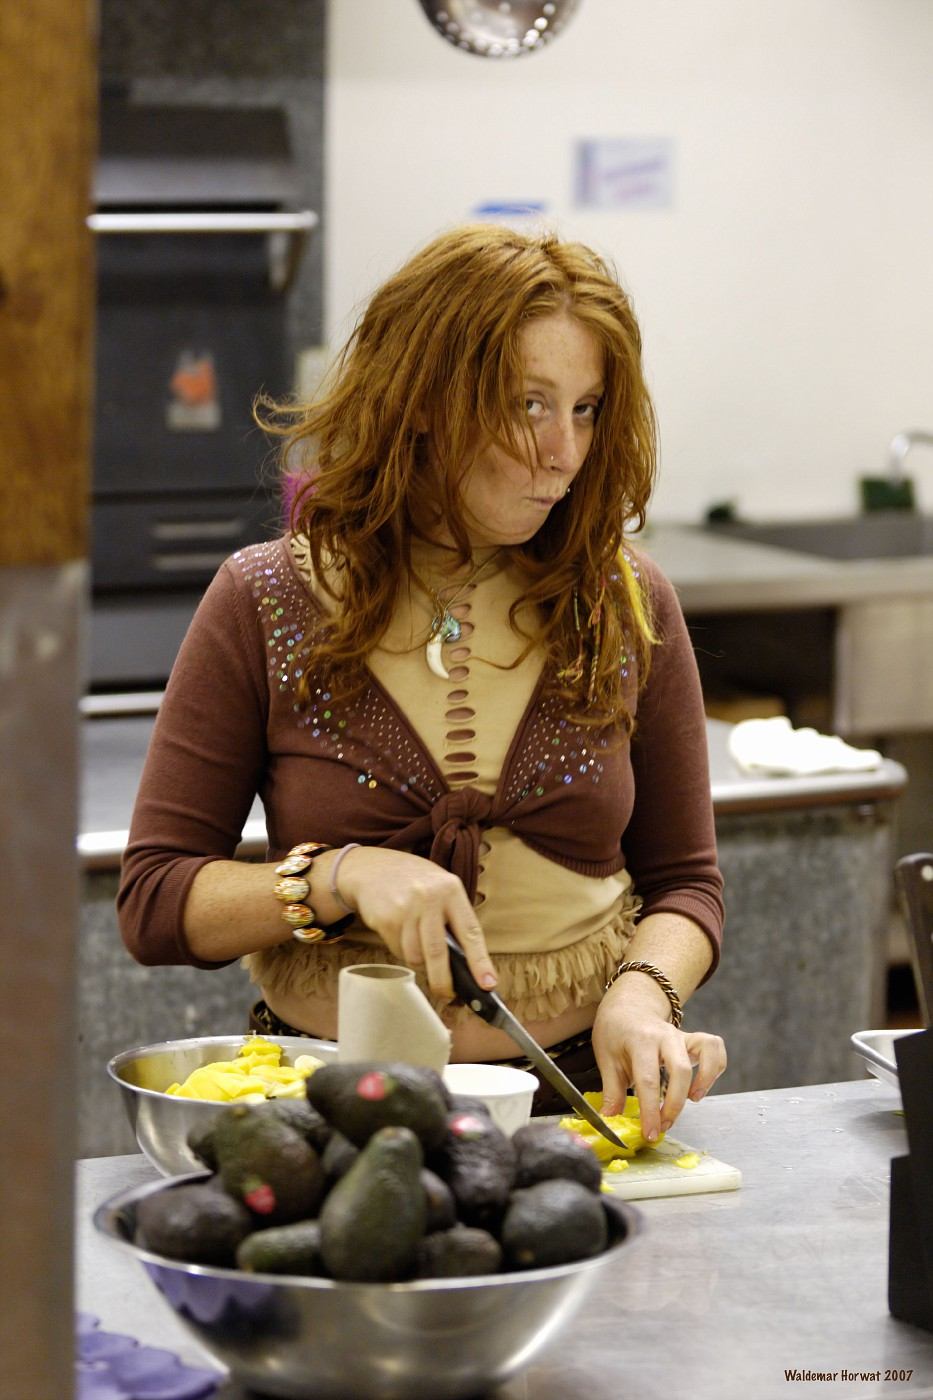 Sharon with Knife